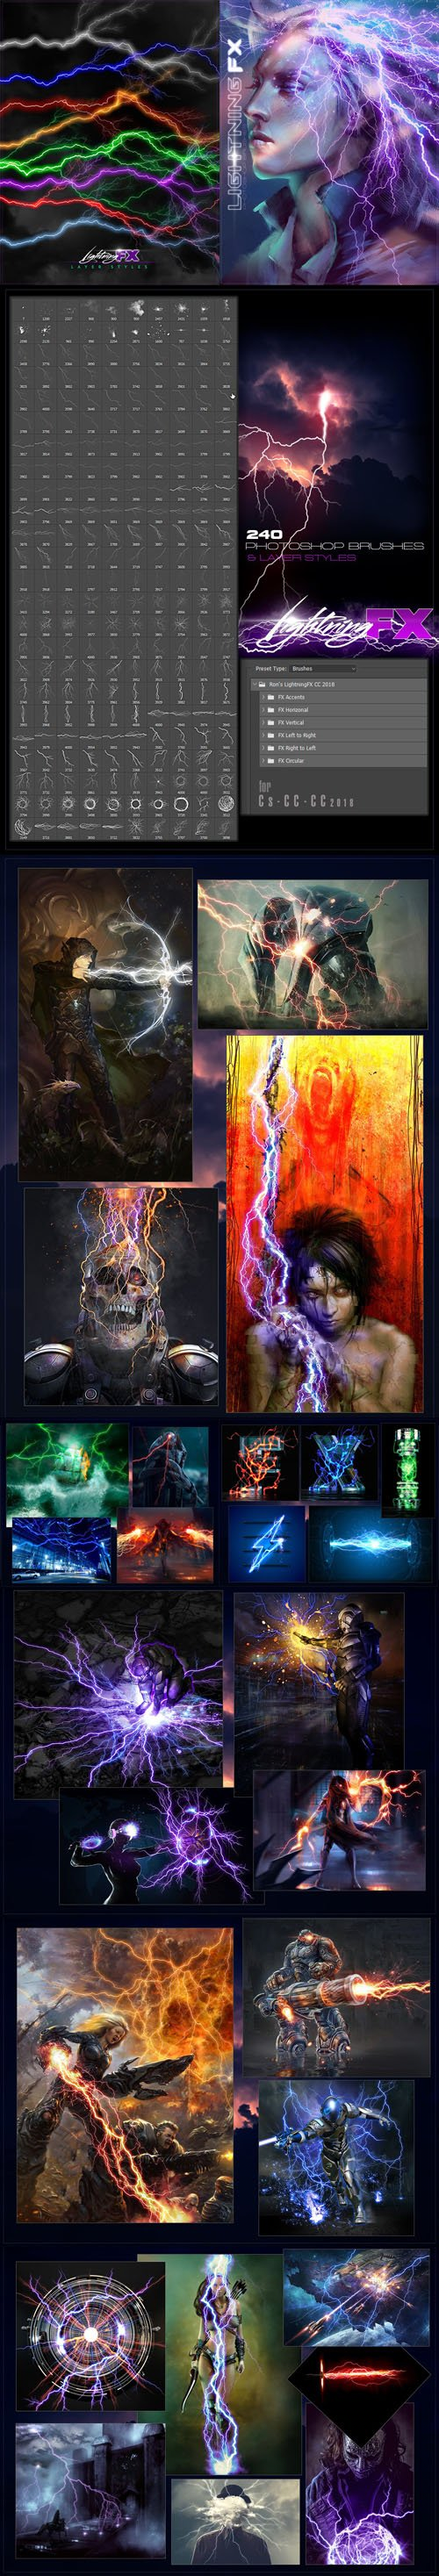 Rons Lightning FX Brushes & Styles for Photoshop